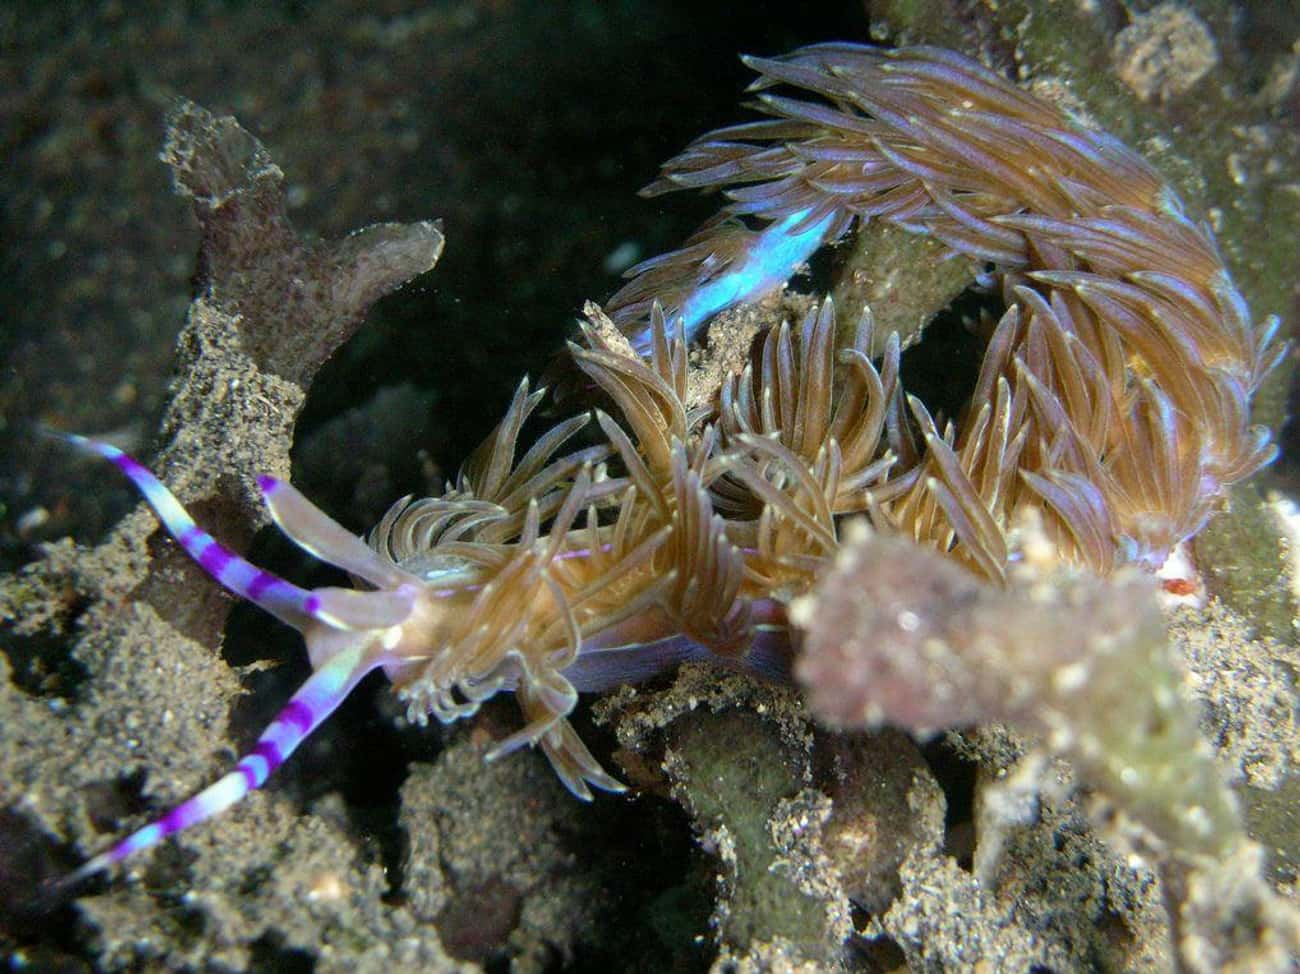 Blue Dragon Nudibranch is listed (or ranked) 4 on the list 75 Stunning Oceanic Invertebrates That Deserve A Closer Look